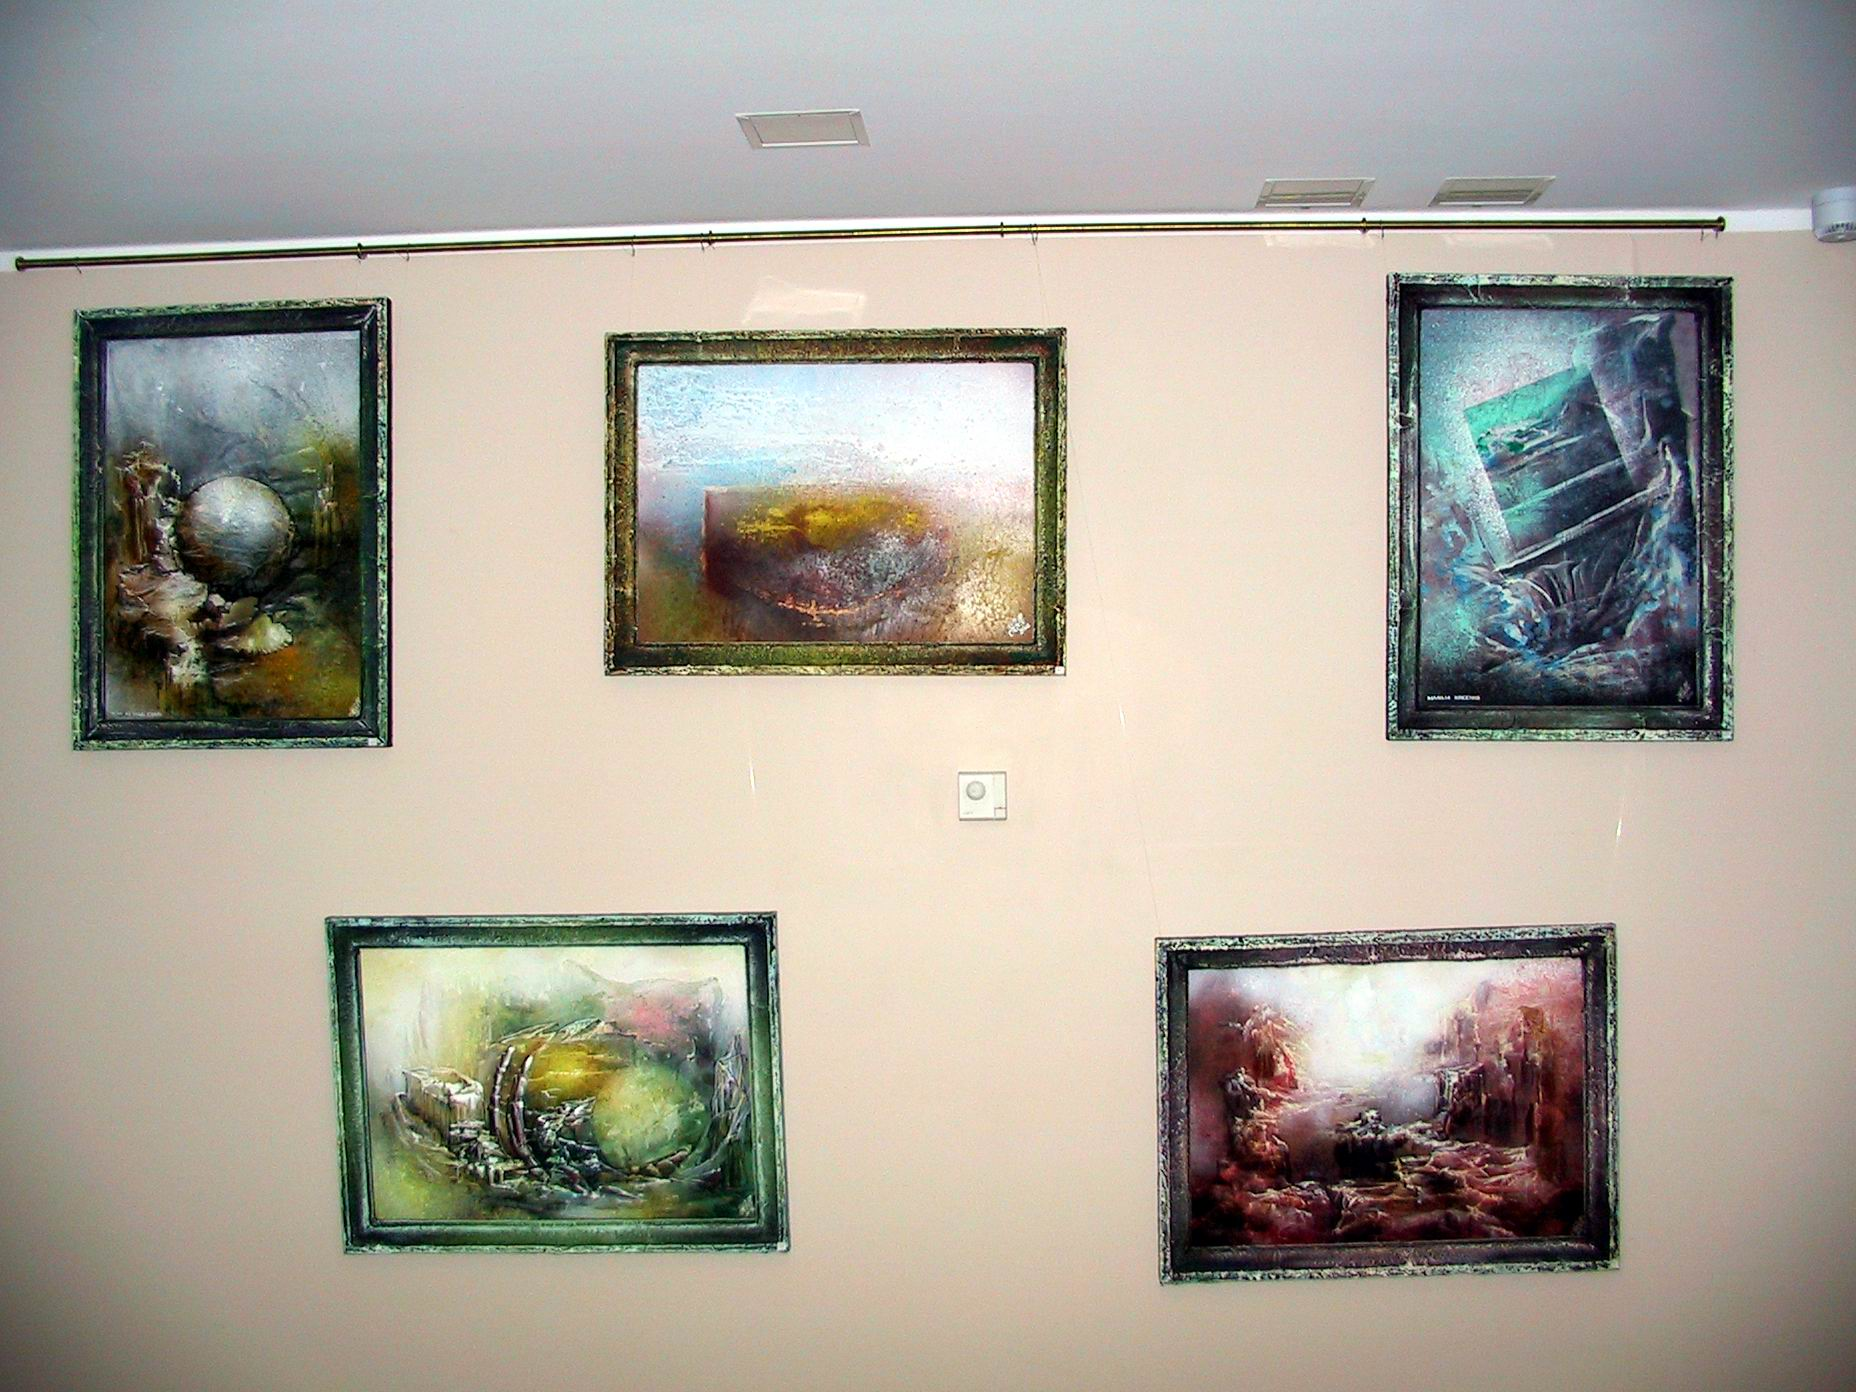 Day 08 10 Artistic Paintings On A Wall In The Hotel Tallinn Estonia